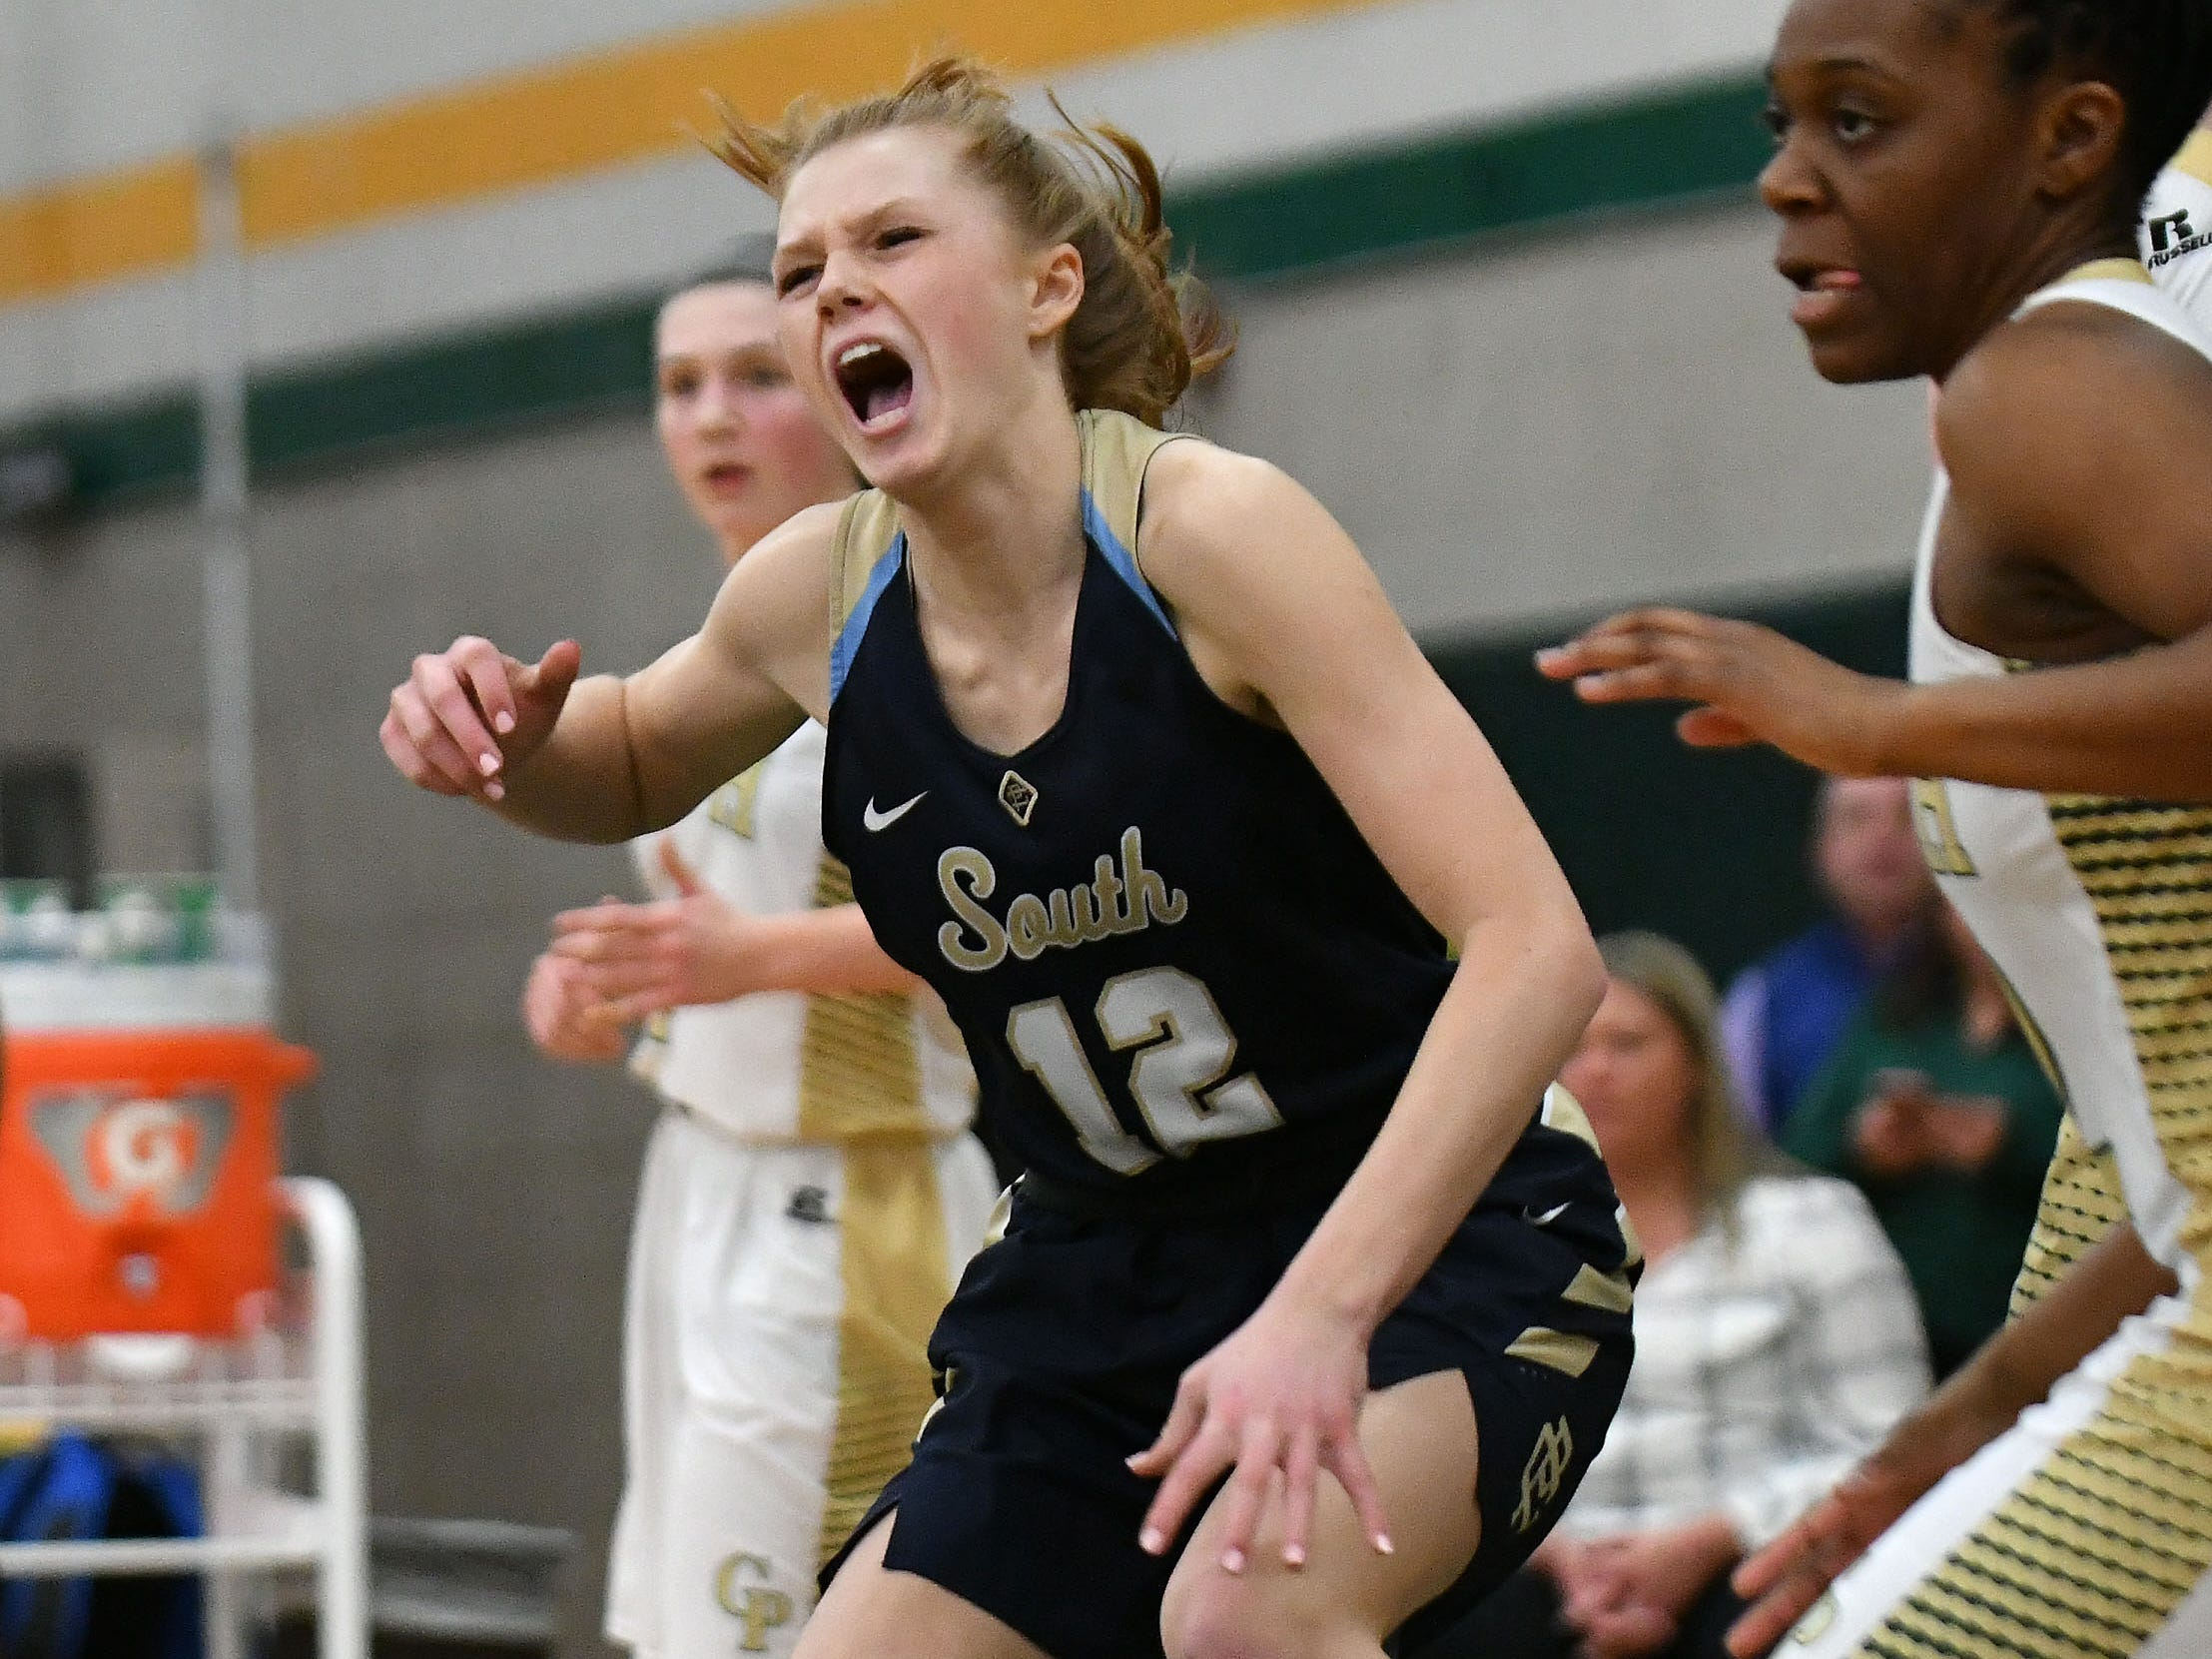 Grosse Pointe South's Keely Conlan grimaces in pain after making a pass. She was injured on the play and had to be helped off the court in the first half.   on Friday, March 8, 2019.